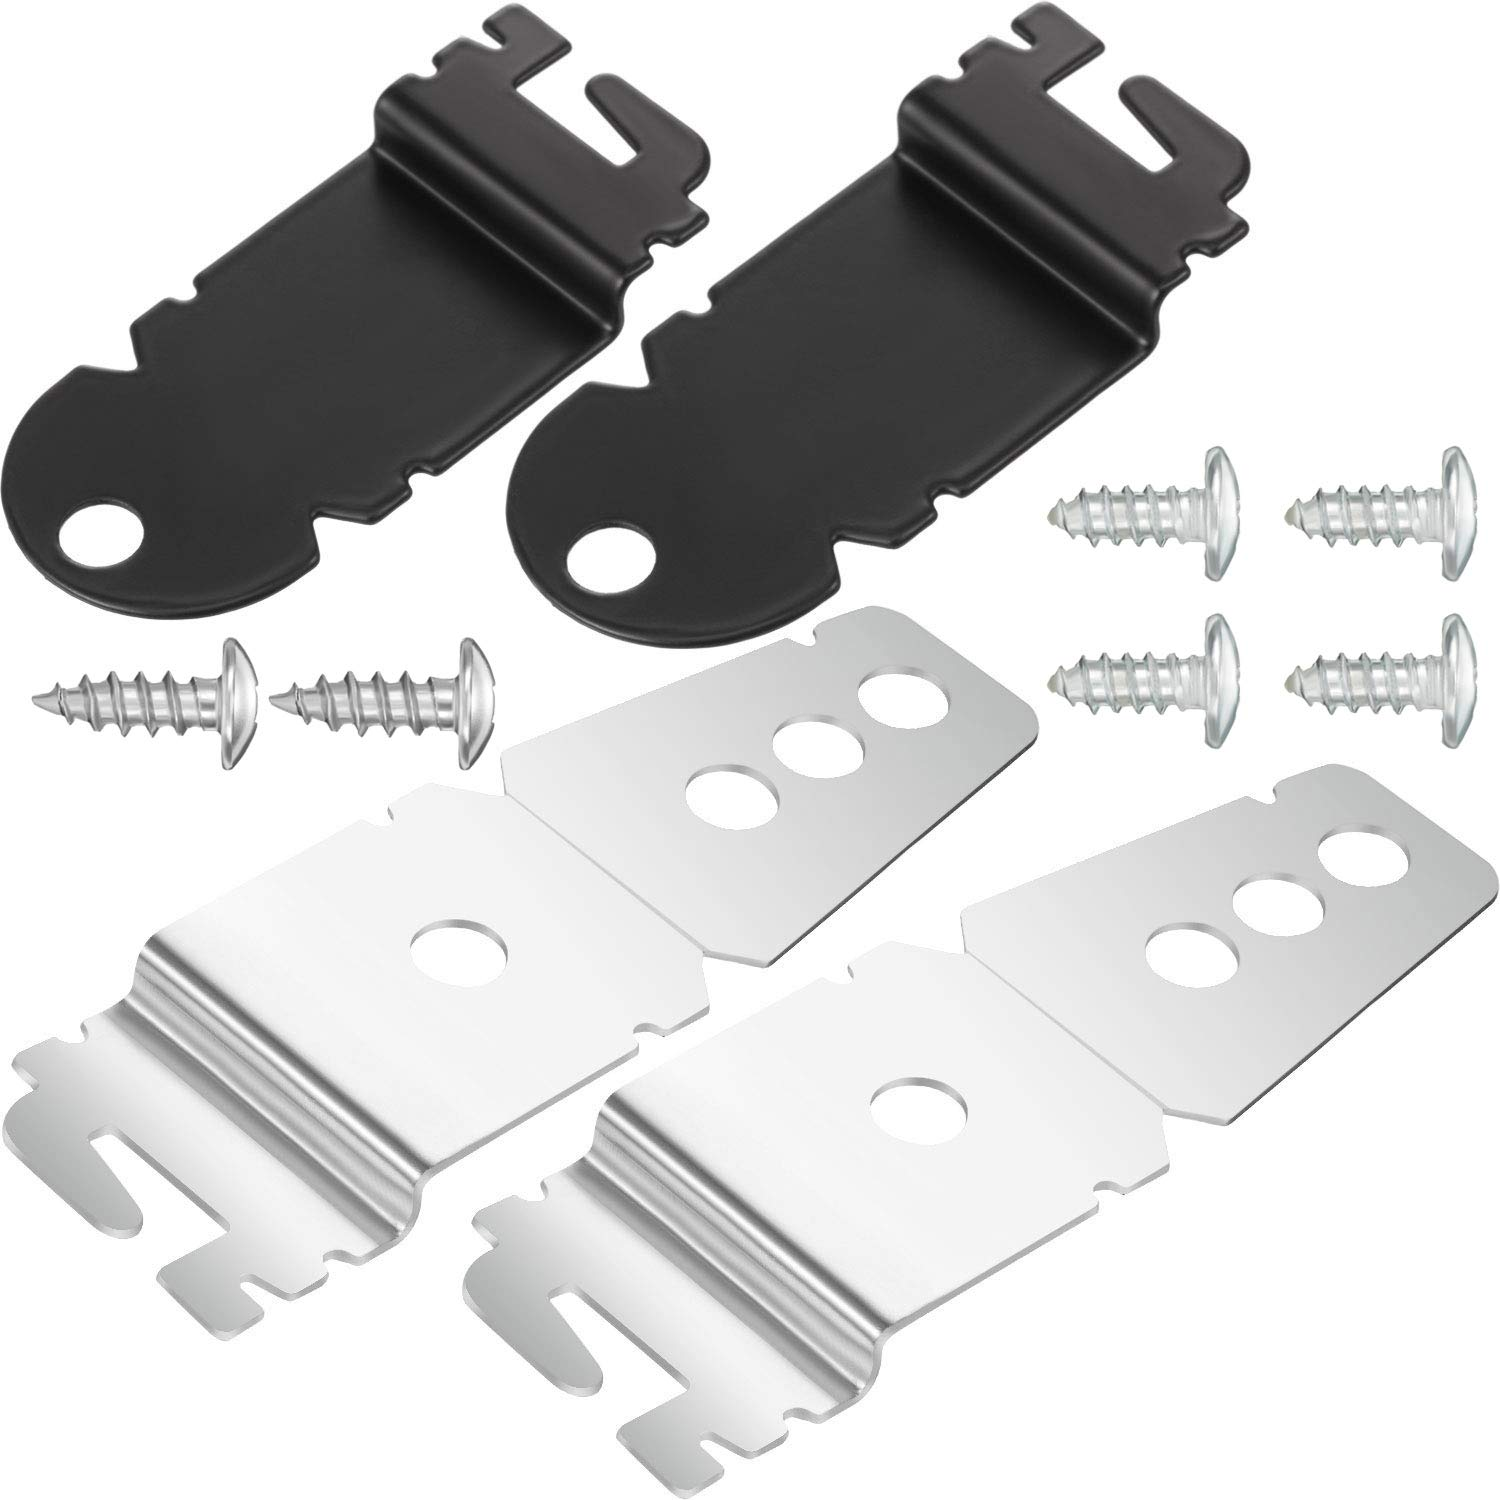 Hotop 2 Packs 8212560 Dishwasher Side Mounting Brackets and 4 Packs Black Installation Screws, 2 Packs 8269145 Dishwasher Upper Mounting Brackets and 2 Packs Sliver Installation Screws